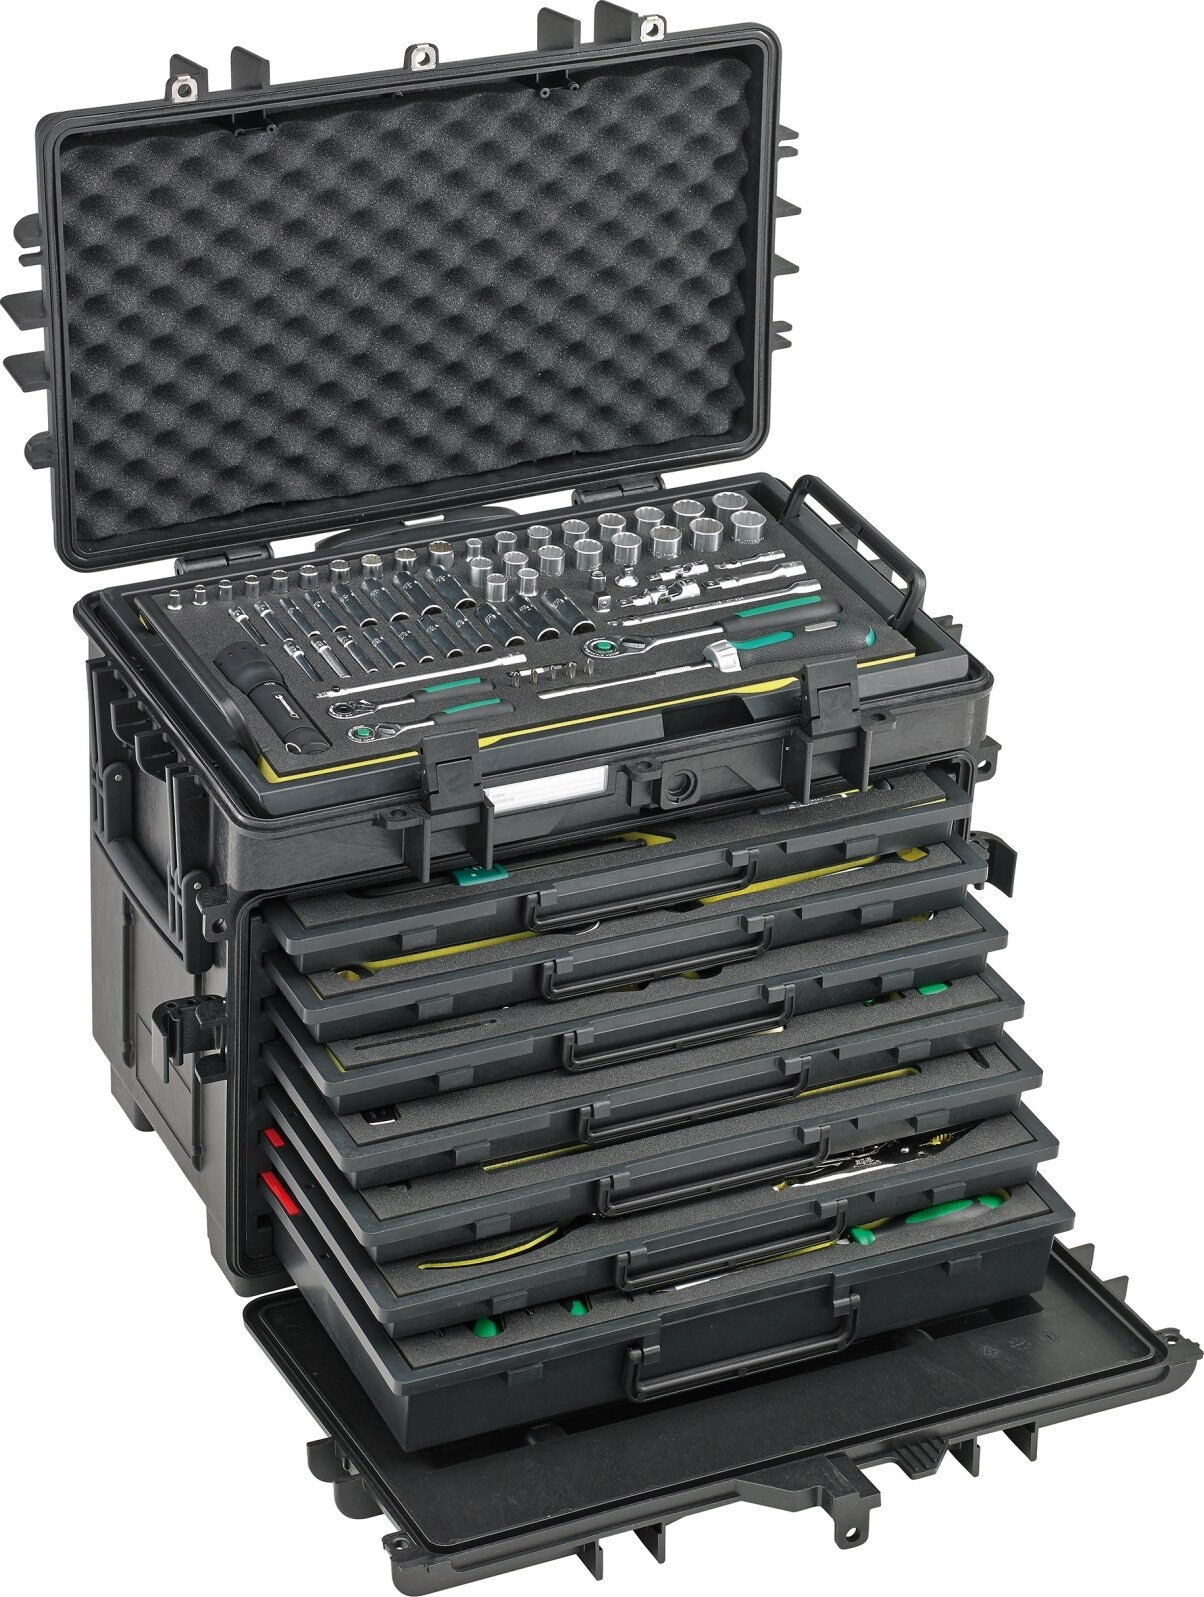 Stahlwille AOG-Kit for aeroplanes in tool trolley No.13221 WT/TS 163-pcs.